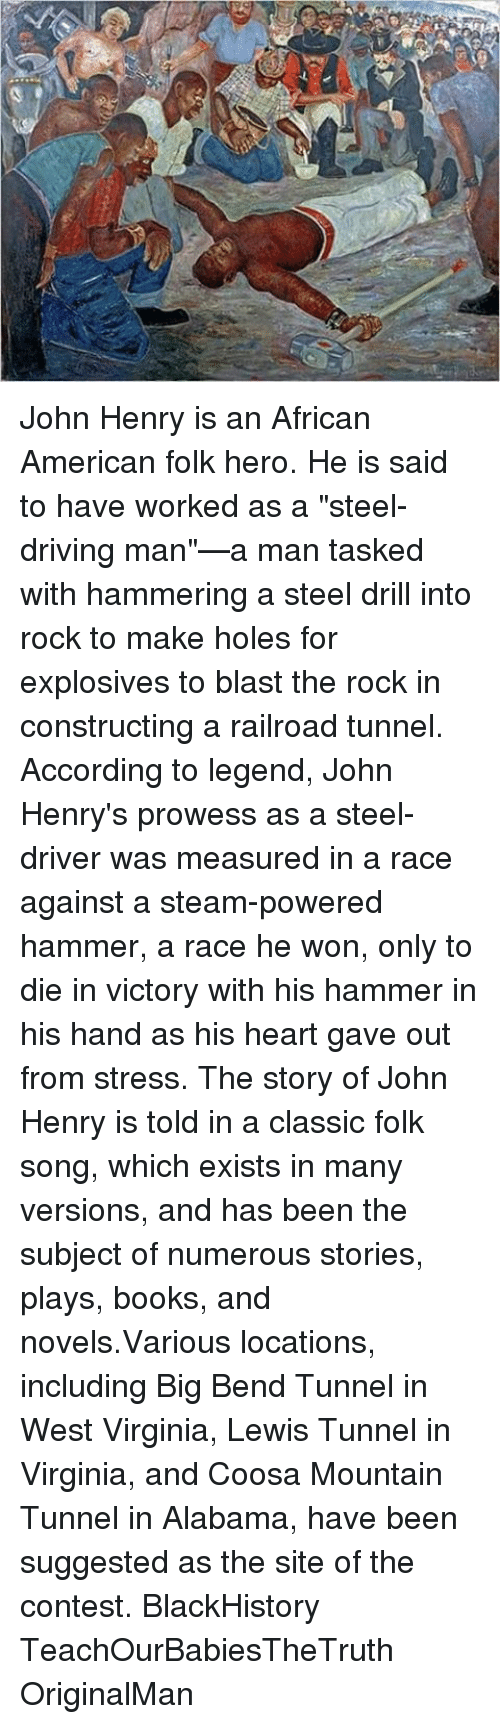 john henry the steel driving man essay Scott reynolds nelson, in steel drivin' man: john henry, the untold story of an  american legend (2006), searched for prisoners called john henry, found one.